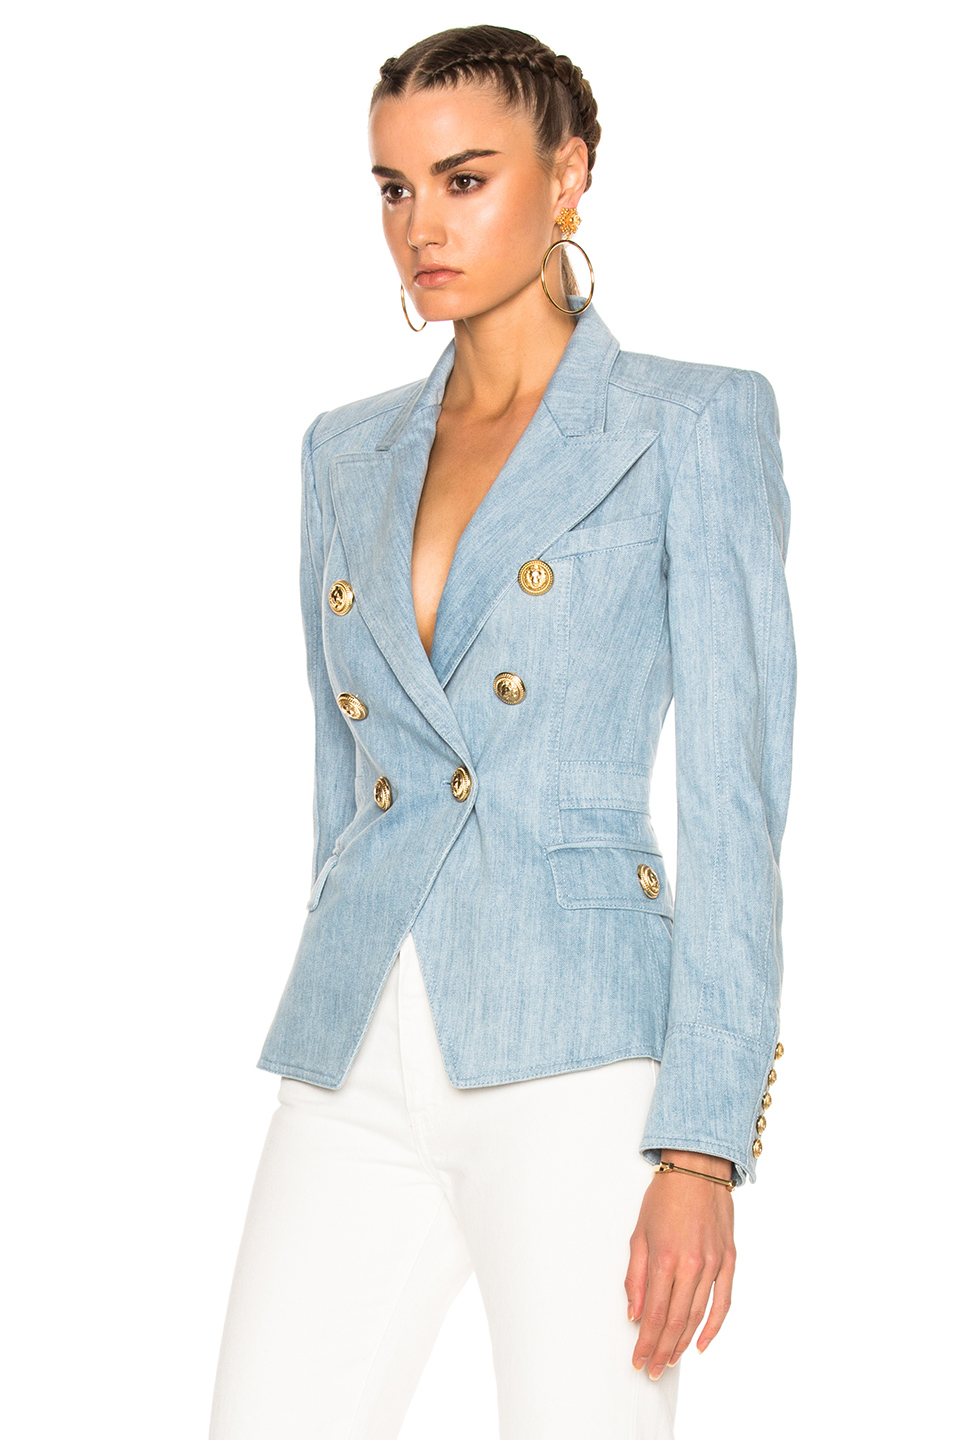 Balmain Double Breasted Blazer | Balmain Leather Skirt | Balmain Jackets